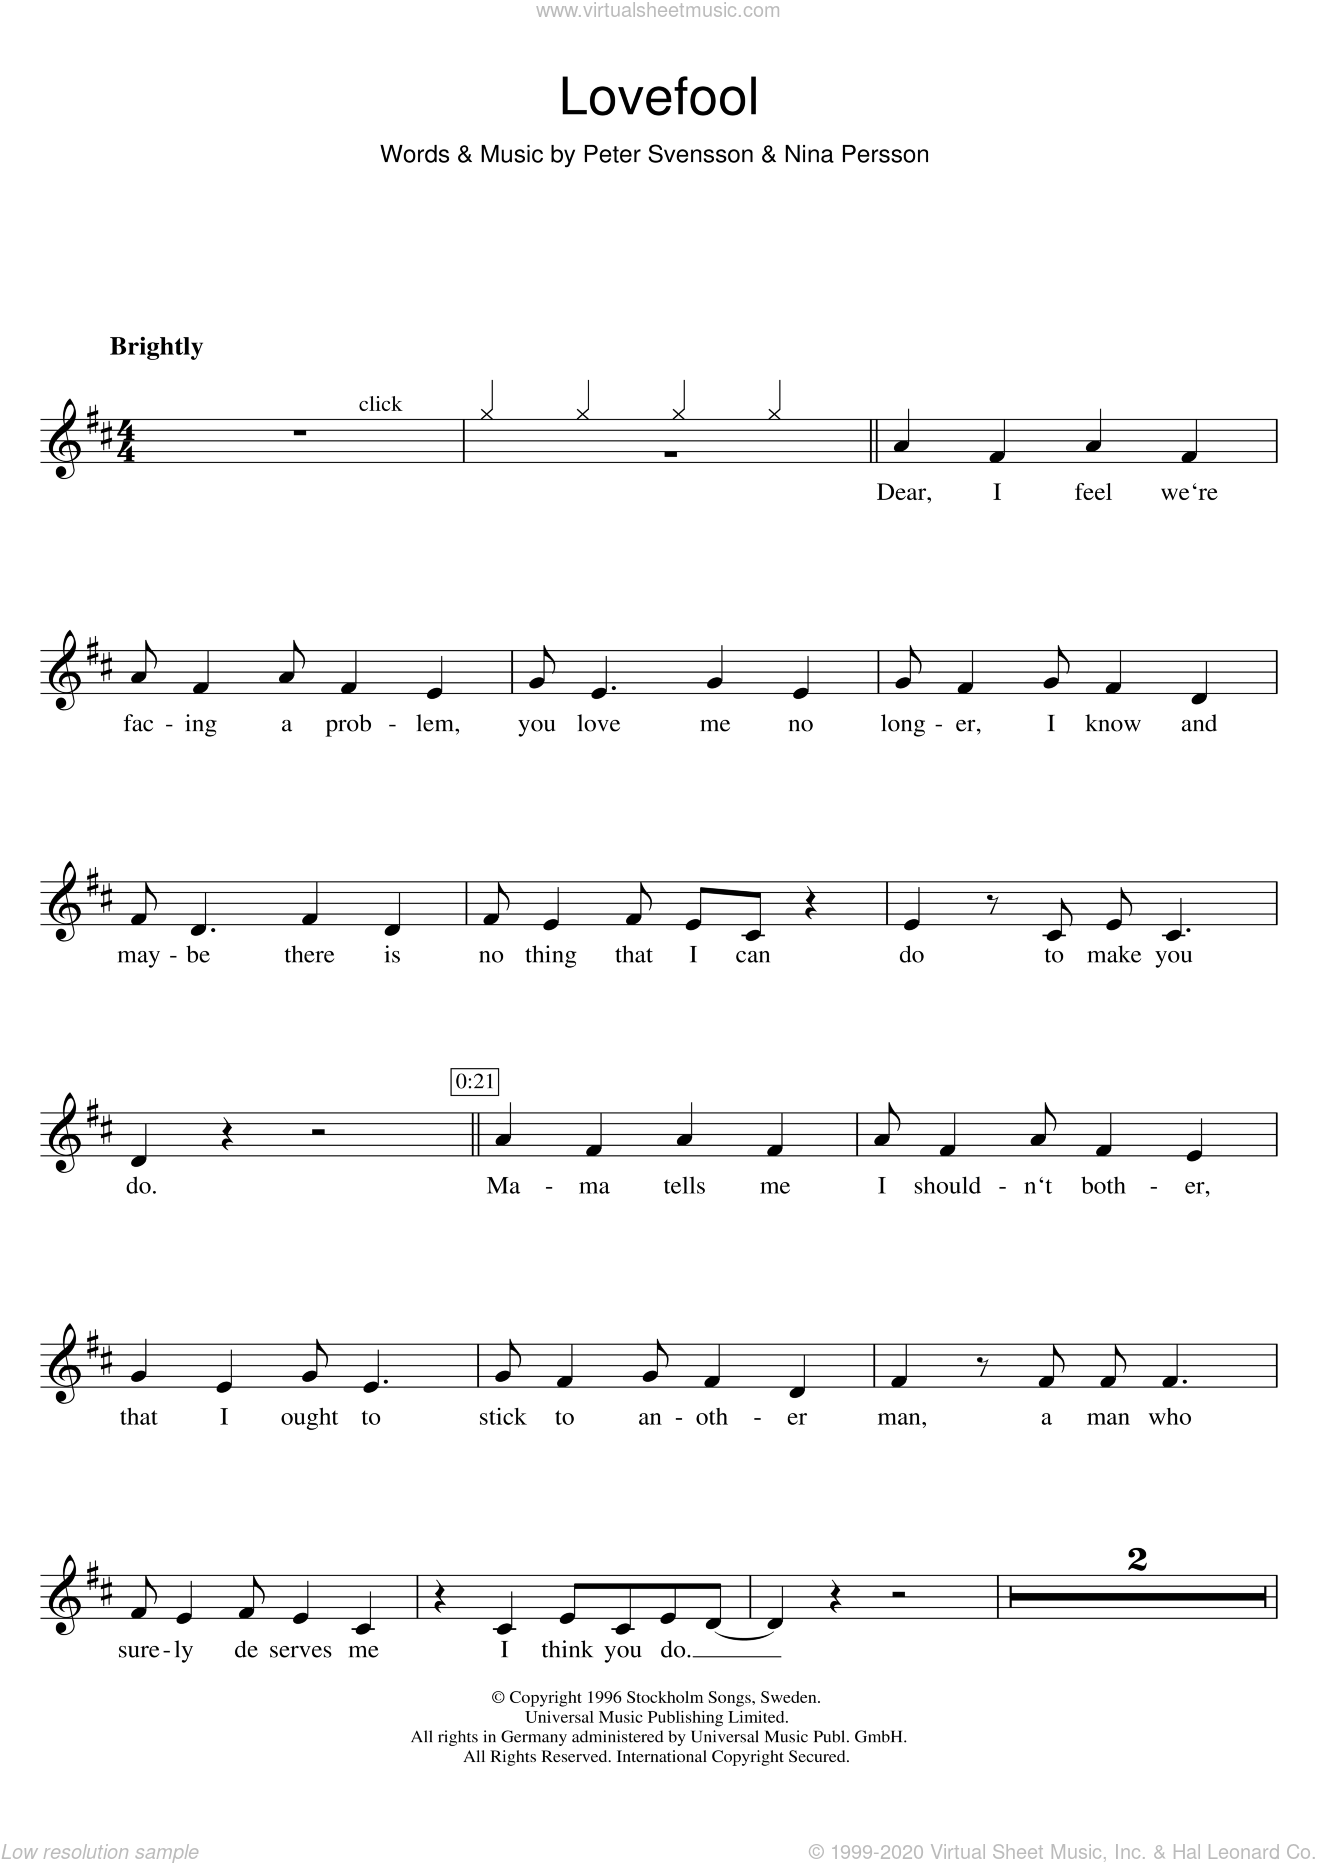 Cardigans - Lovefool sheet music for clarinet solo [PDF]